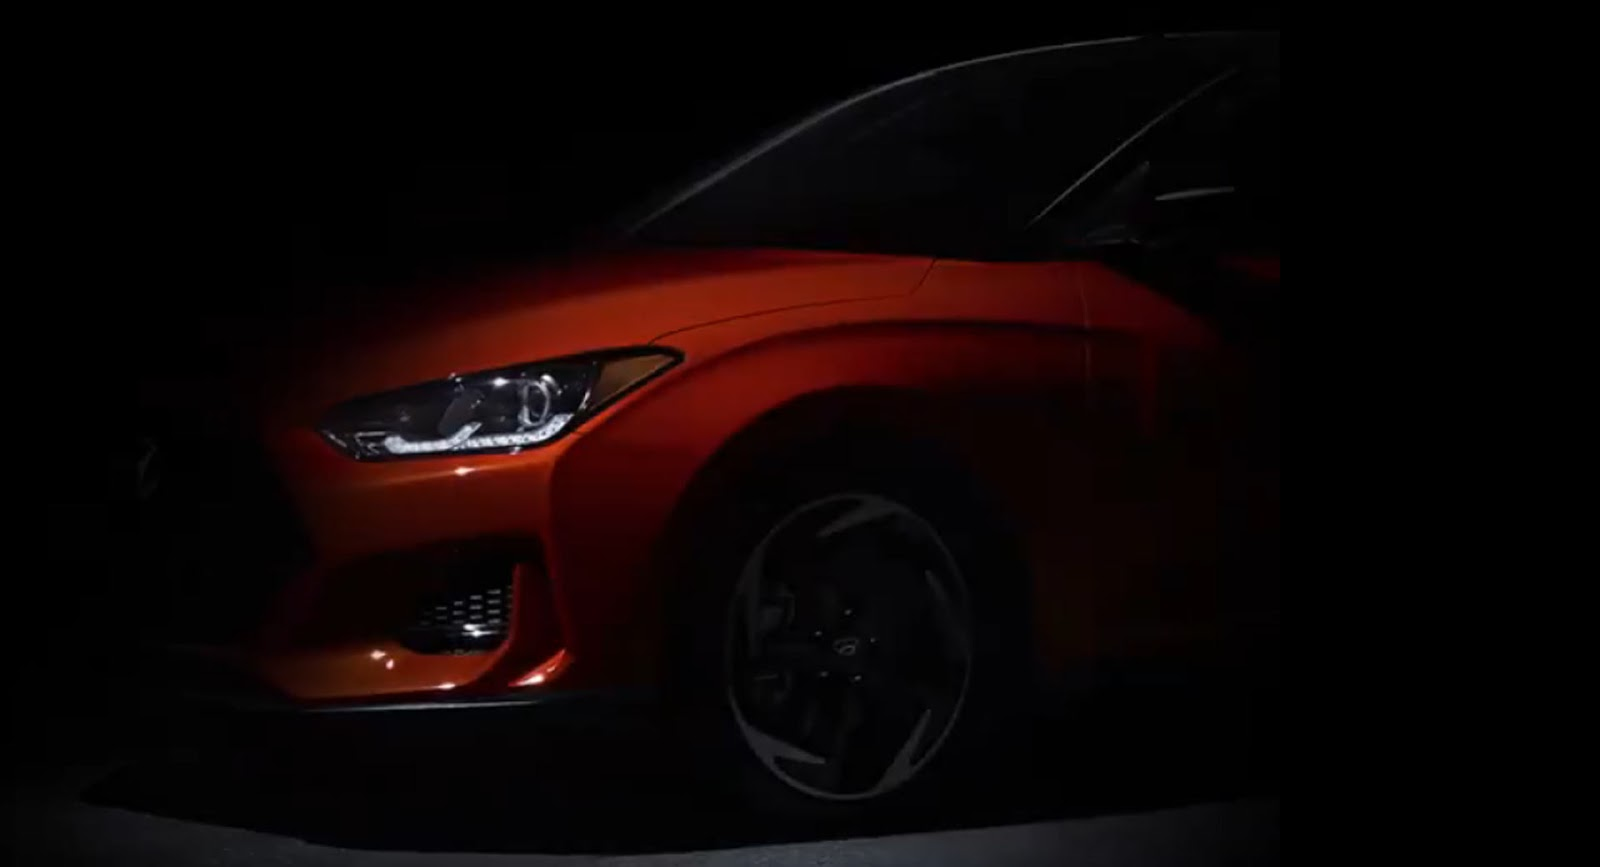 Hyundai has posted another teaser video of its next-gen Veloster hatchback, together with a confirmation that it would be officially revealed at the Detroit Motor Show 2018 starting next week